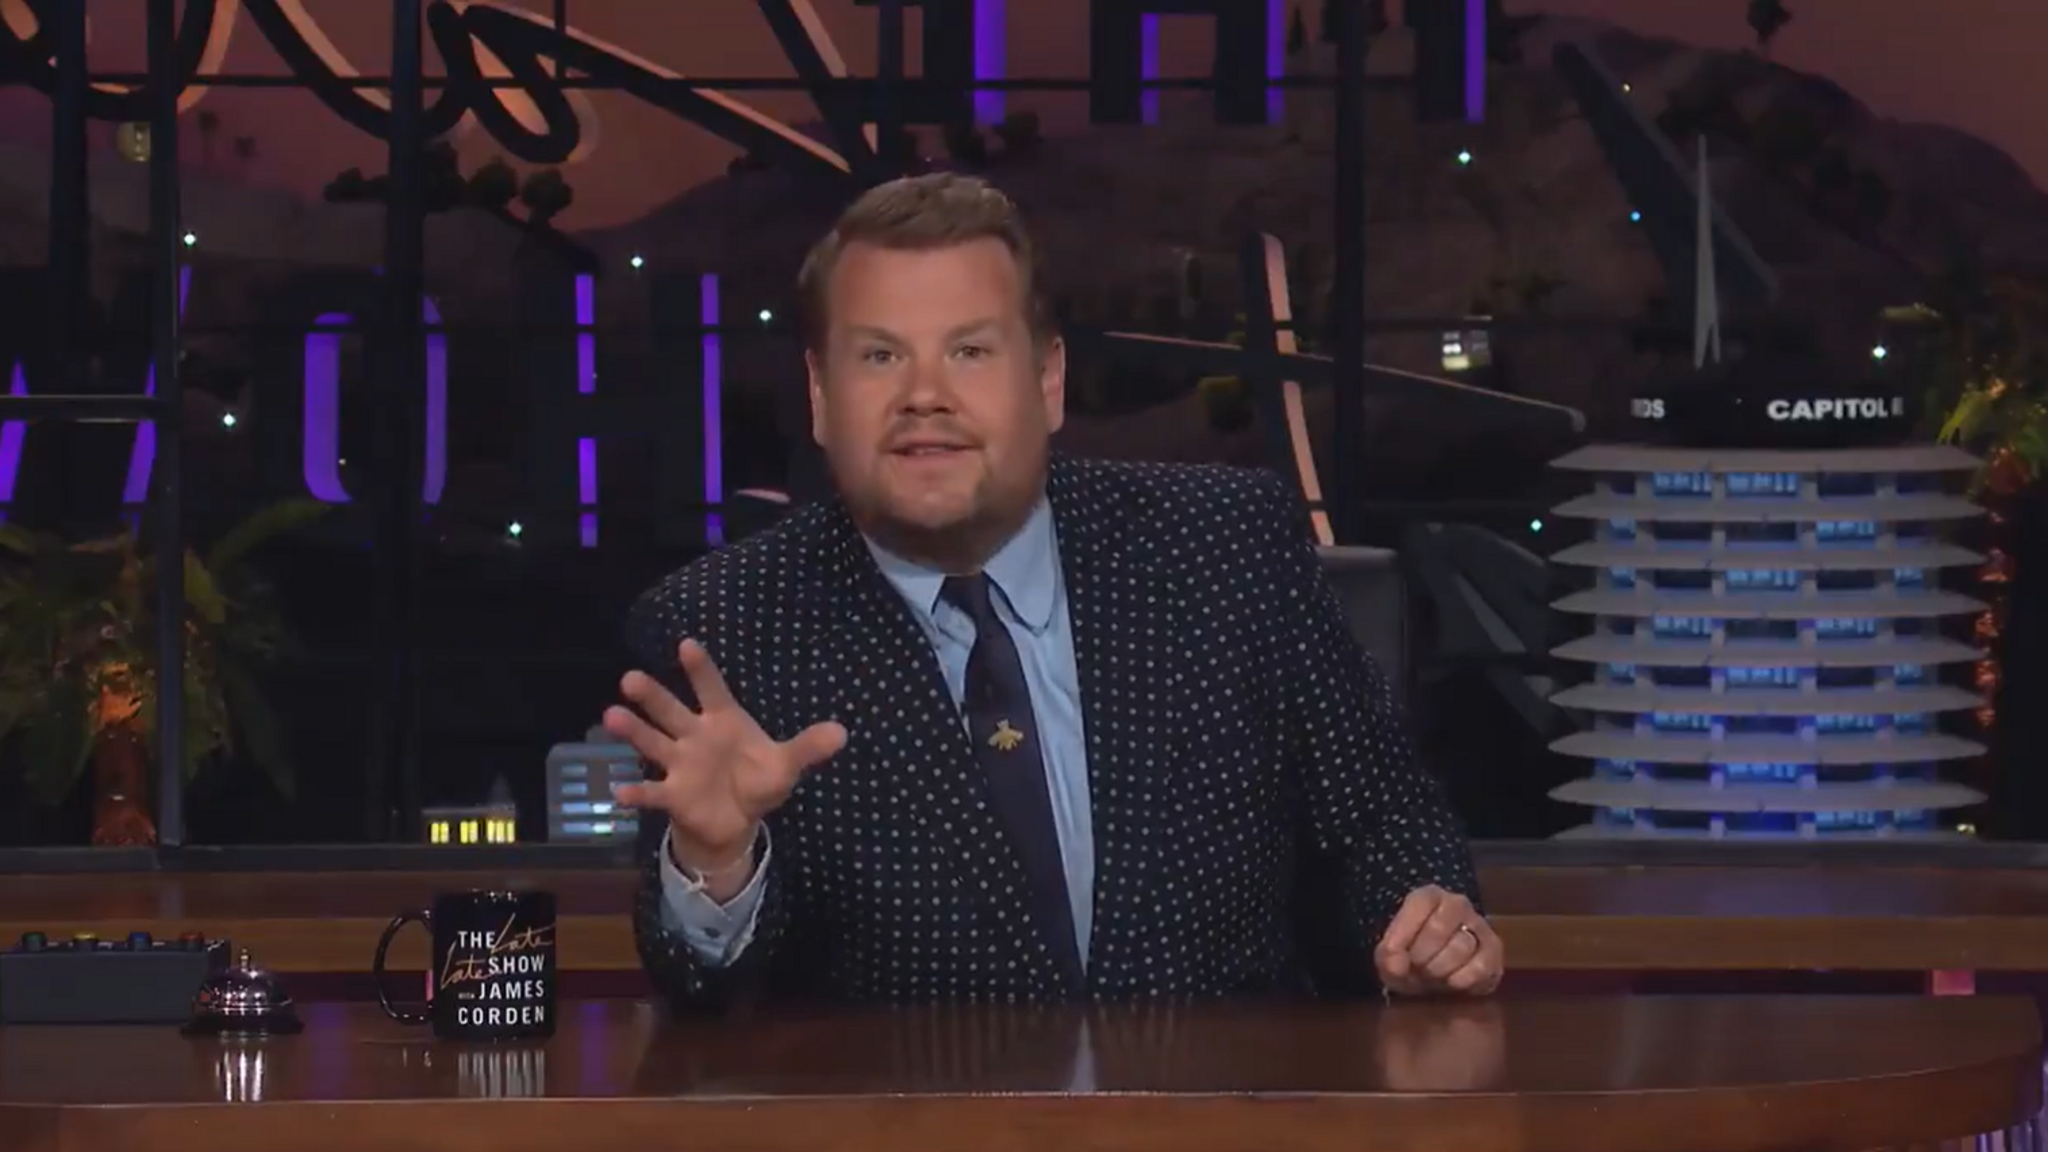 European Super League: James Corden says he is 'heartbroken' by plan in impassioned Late Late Show monologue | Ents & Arts News | Sky News